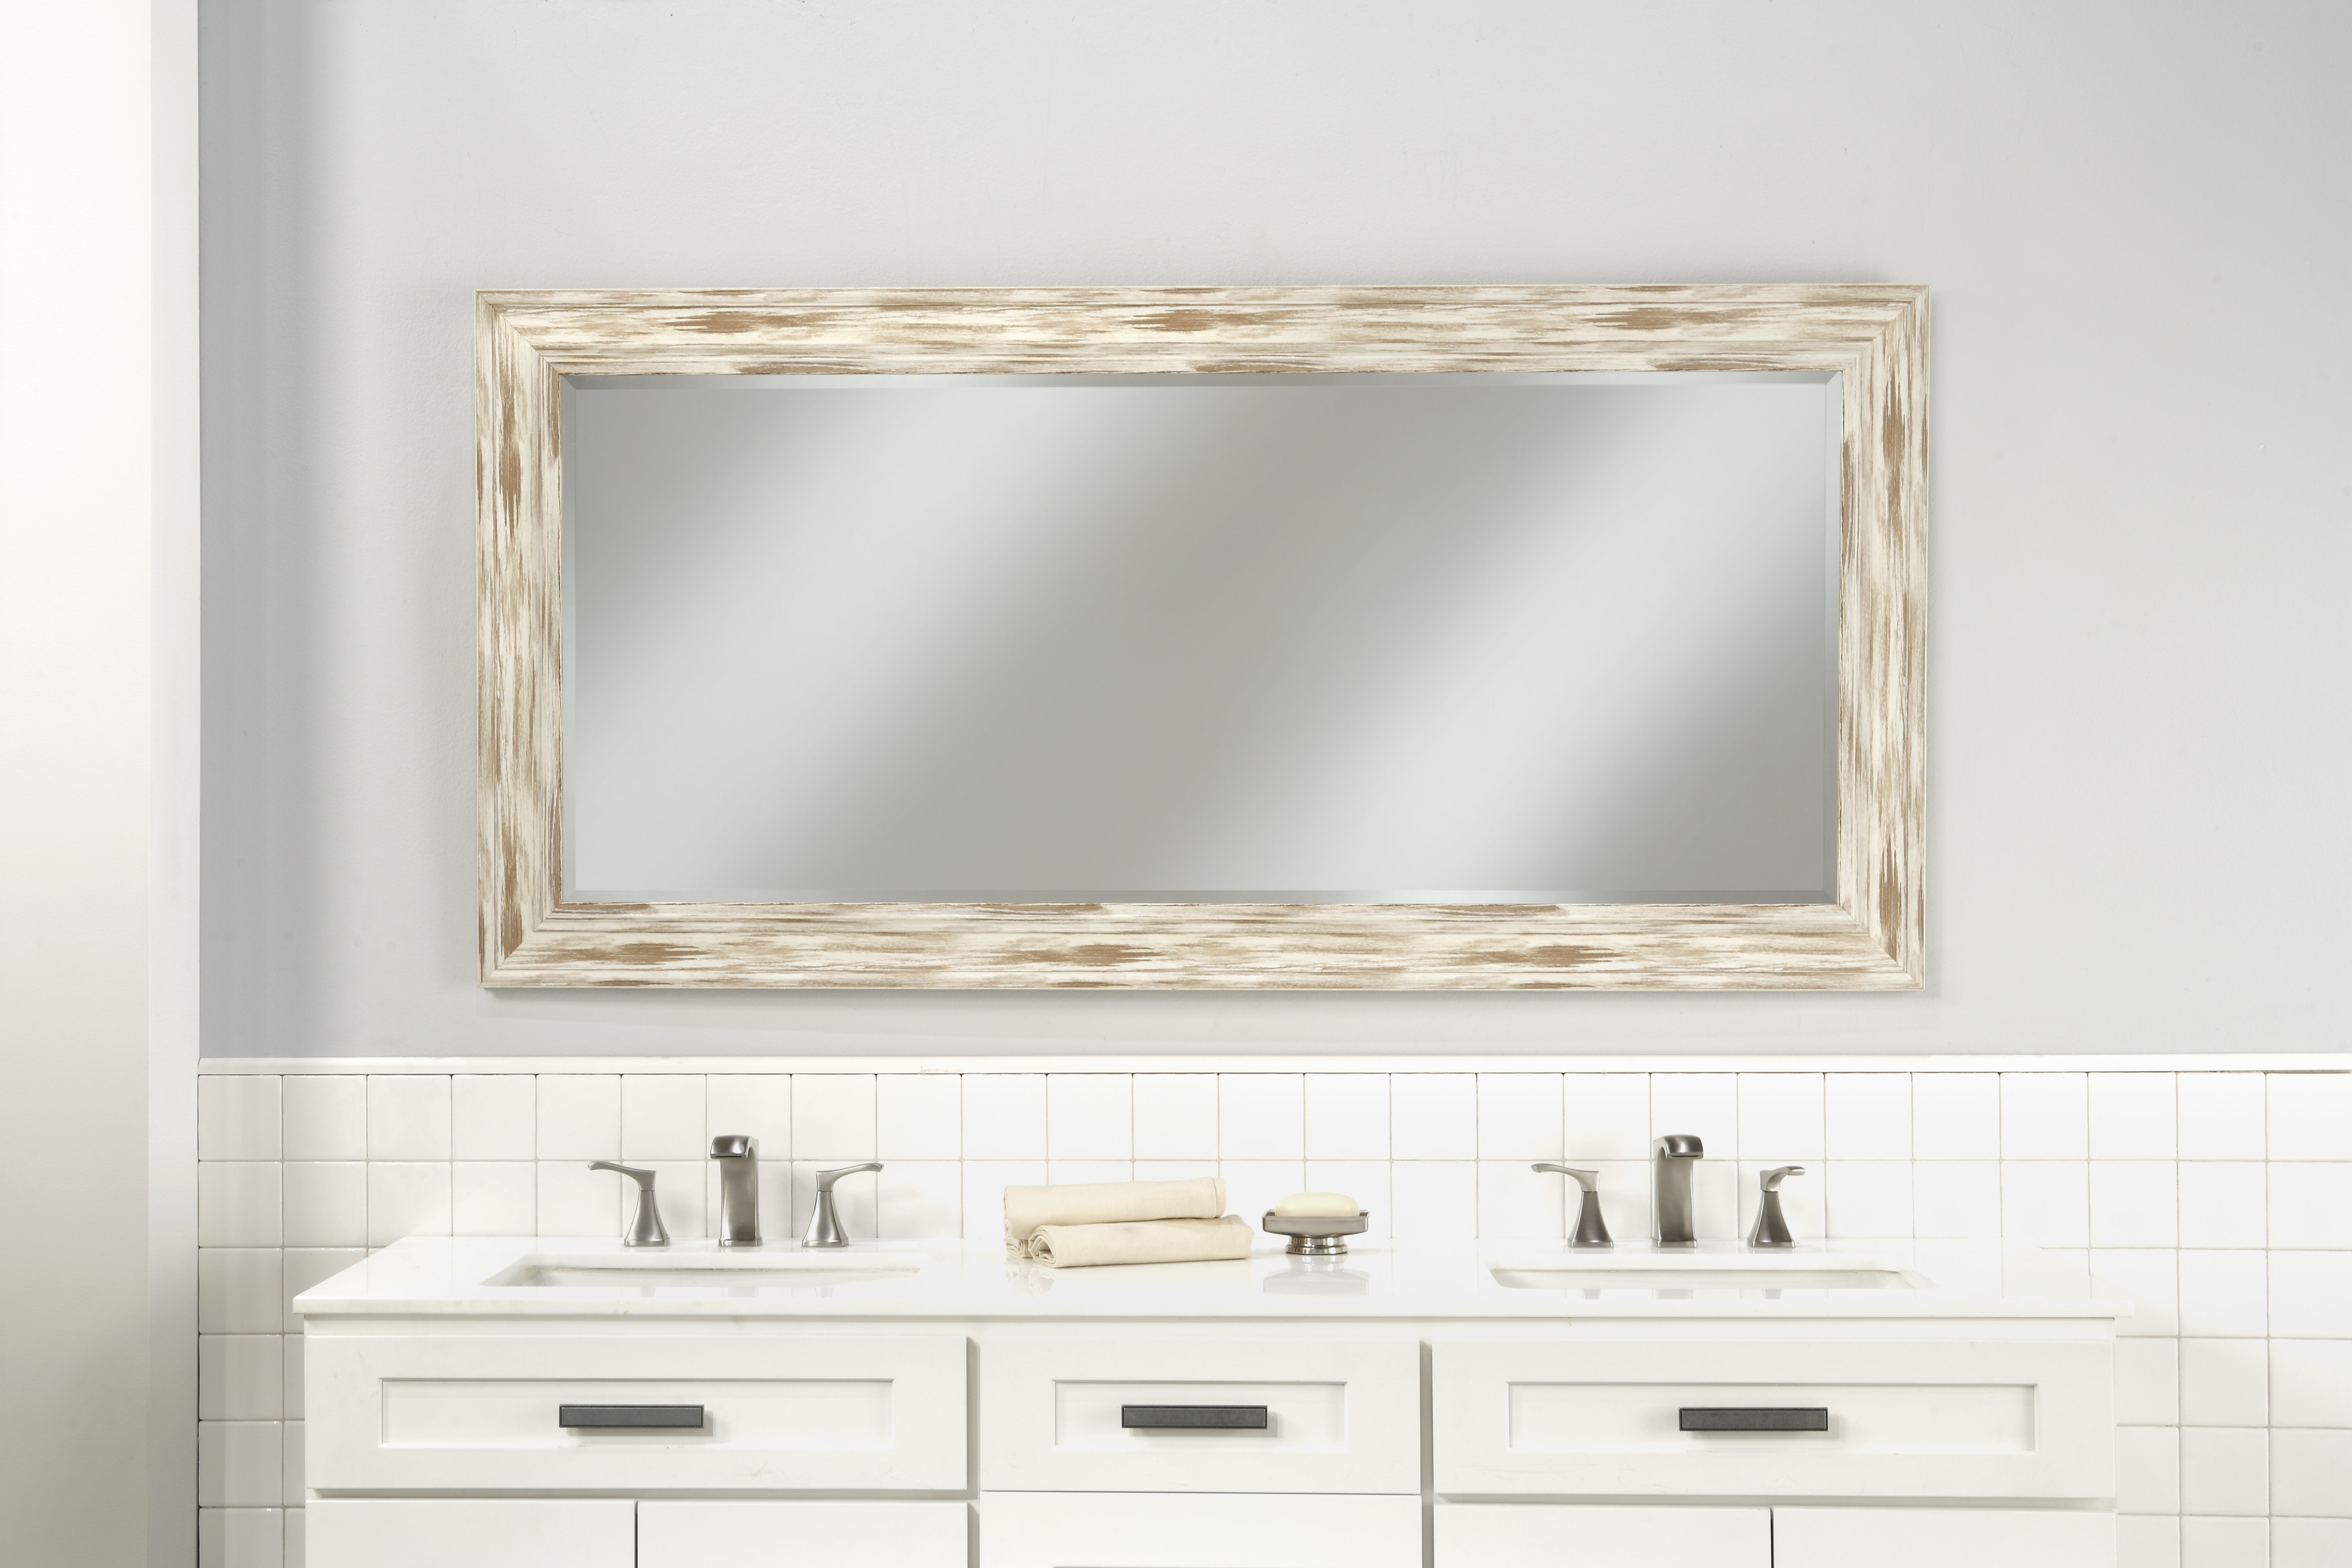 Farmhouse & Rustic Three Posts Wall & Accent Mirrors | Birch for Boyers Wall Mirrors (Image 17 of 30)